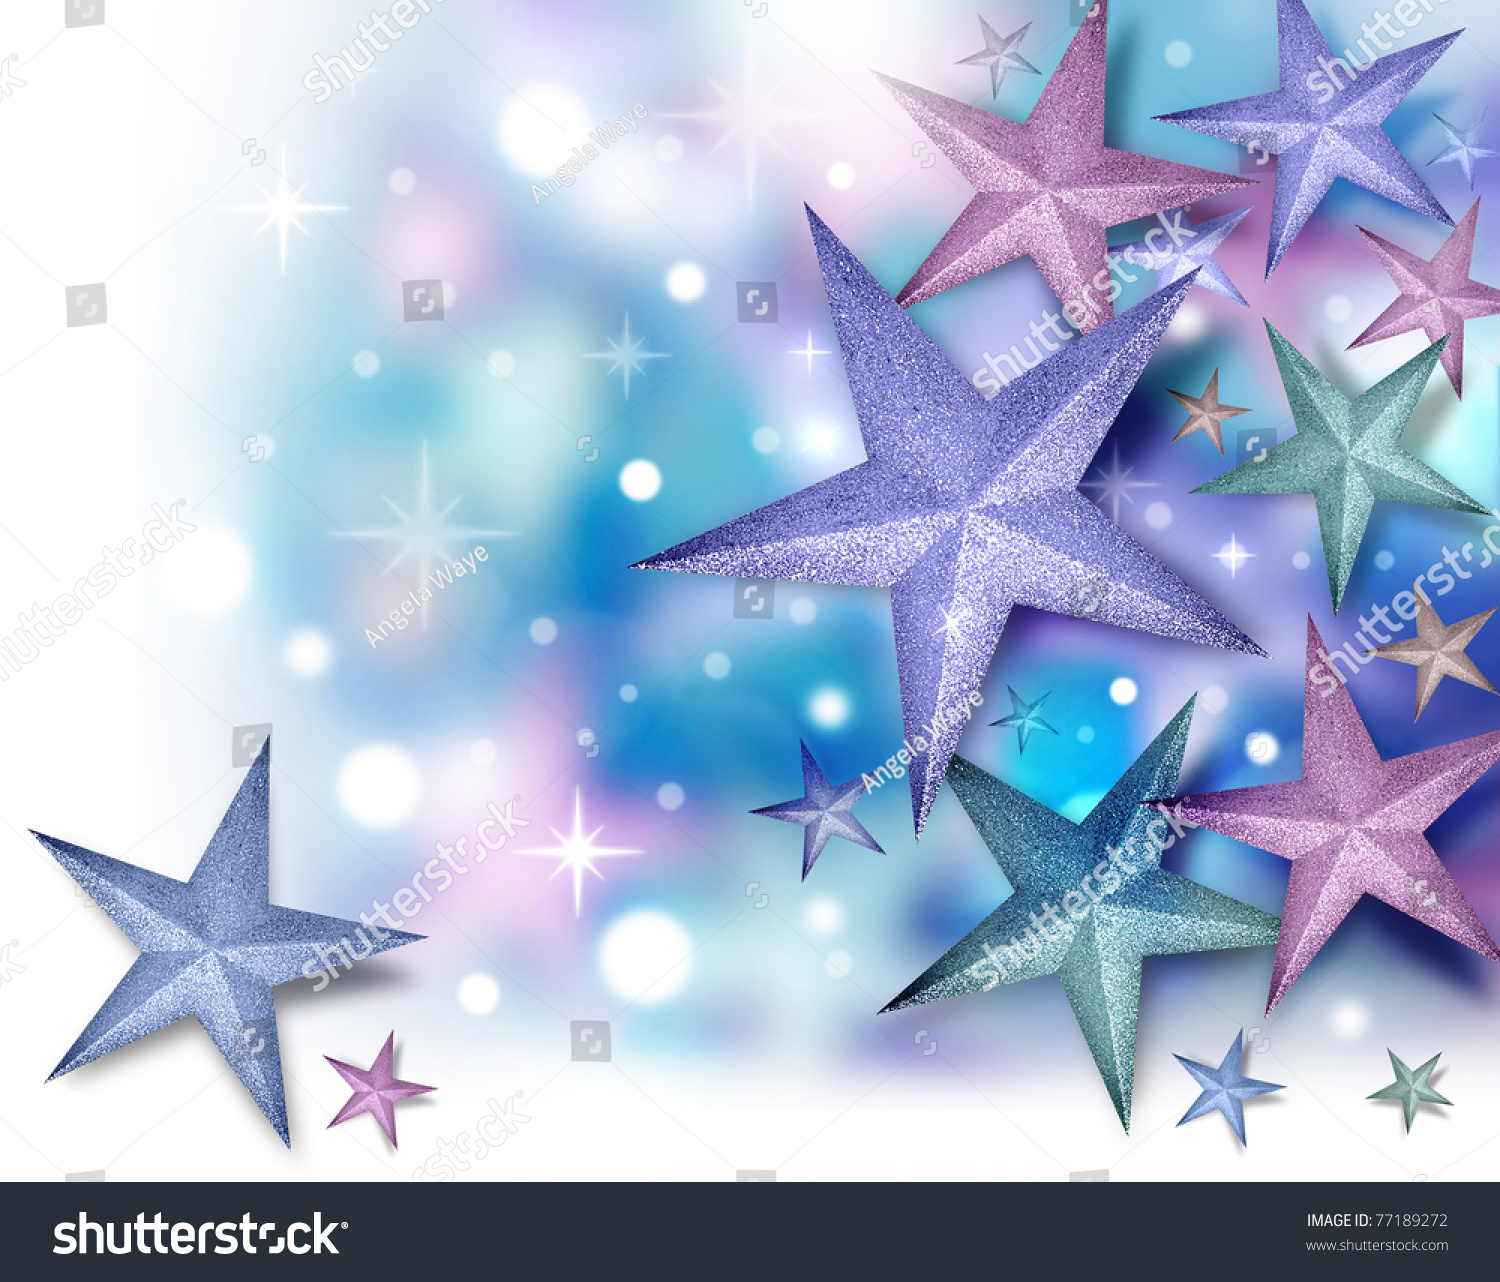 A Purple Blue And Pink Glitter Star Background With